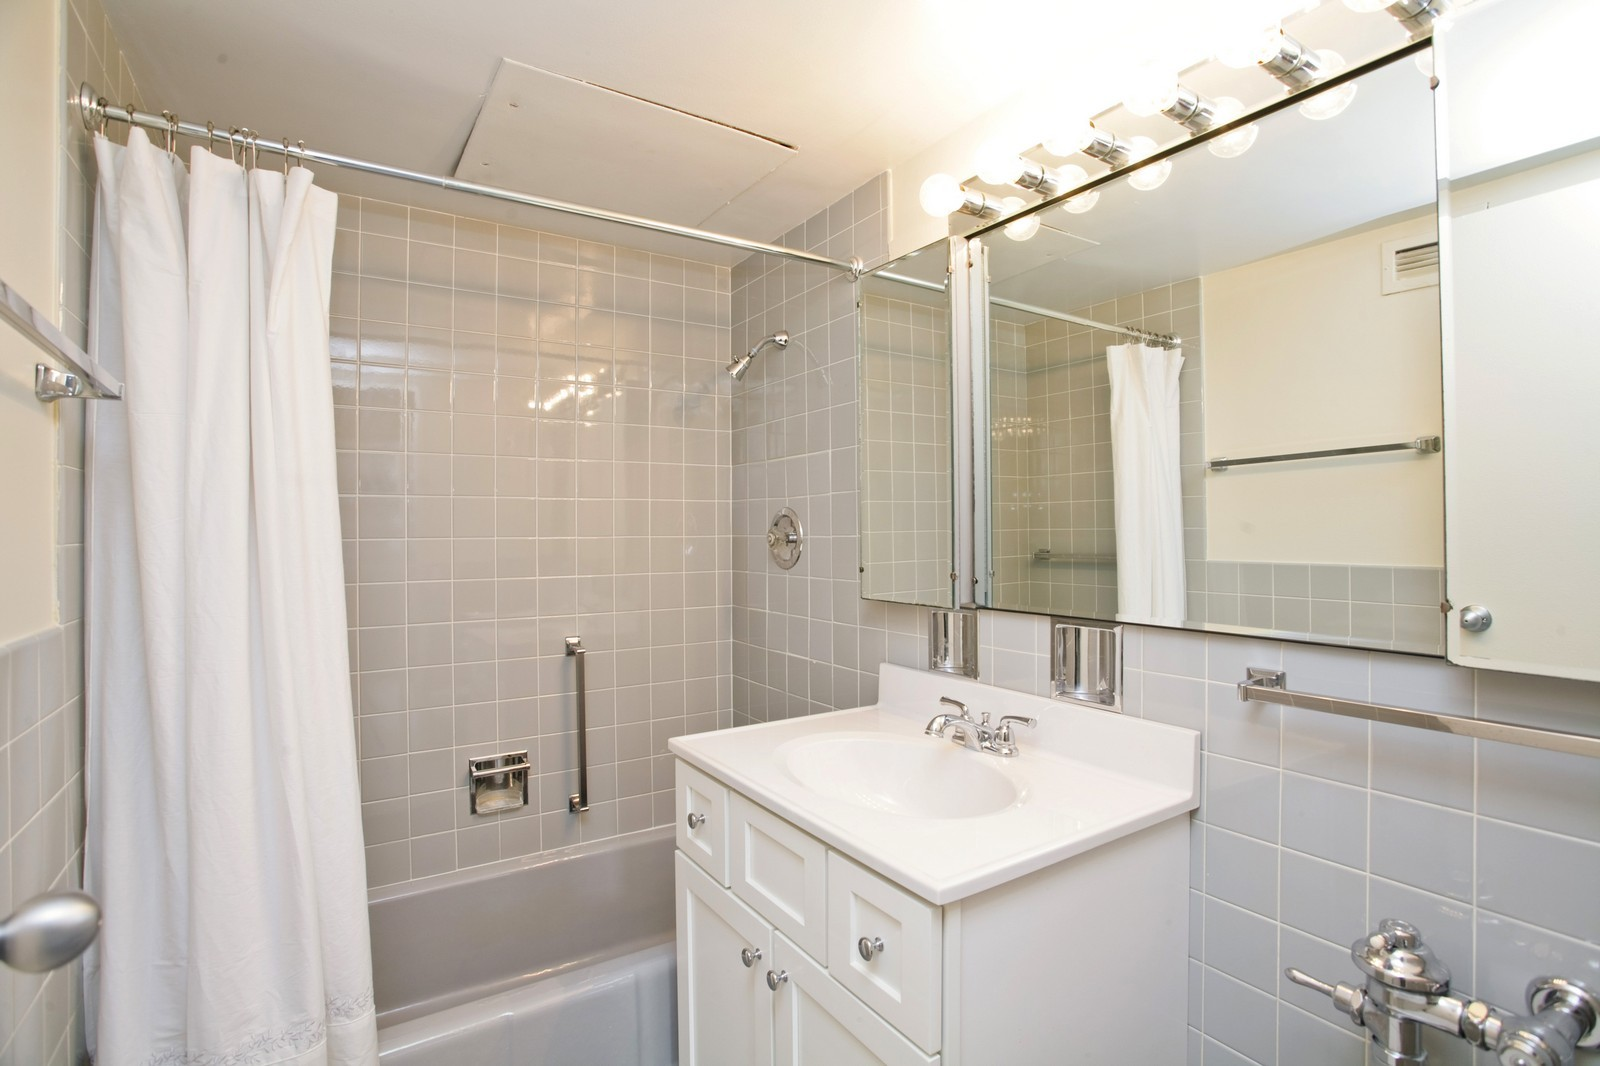 Real Estate Photography - 253 E Delaware, Apt 10F, Chicago, IL, 60611 - Bathroom